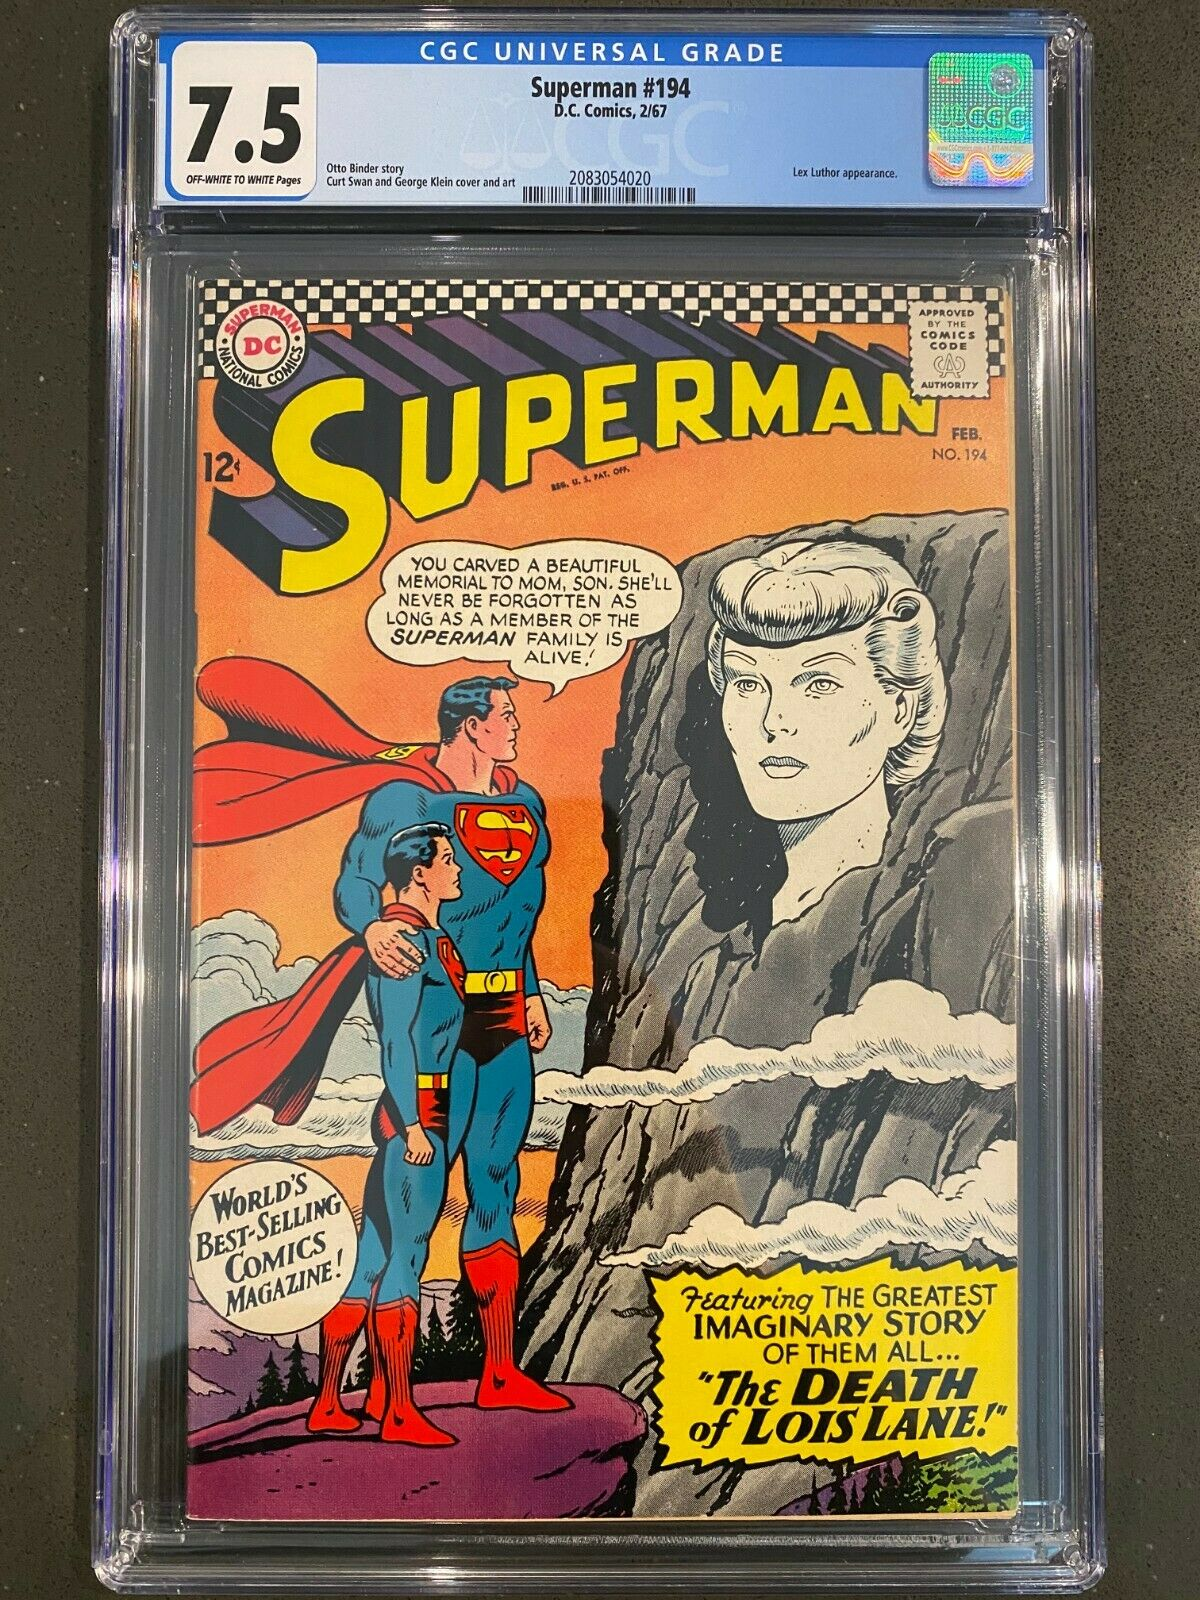 SUPERMAN #194 CGC 7.5 VF- DC Comics Silver Age Superman